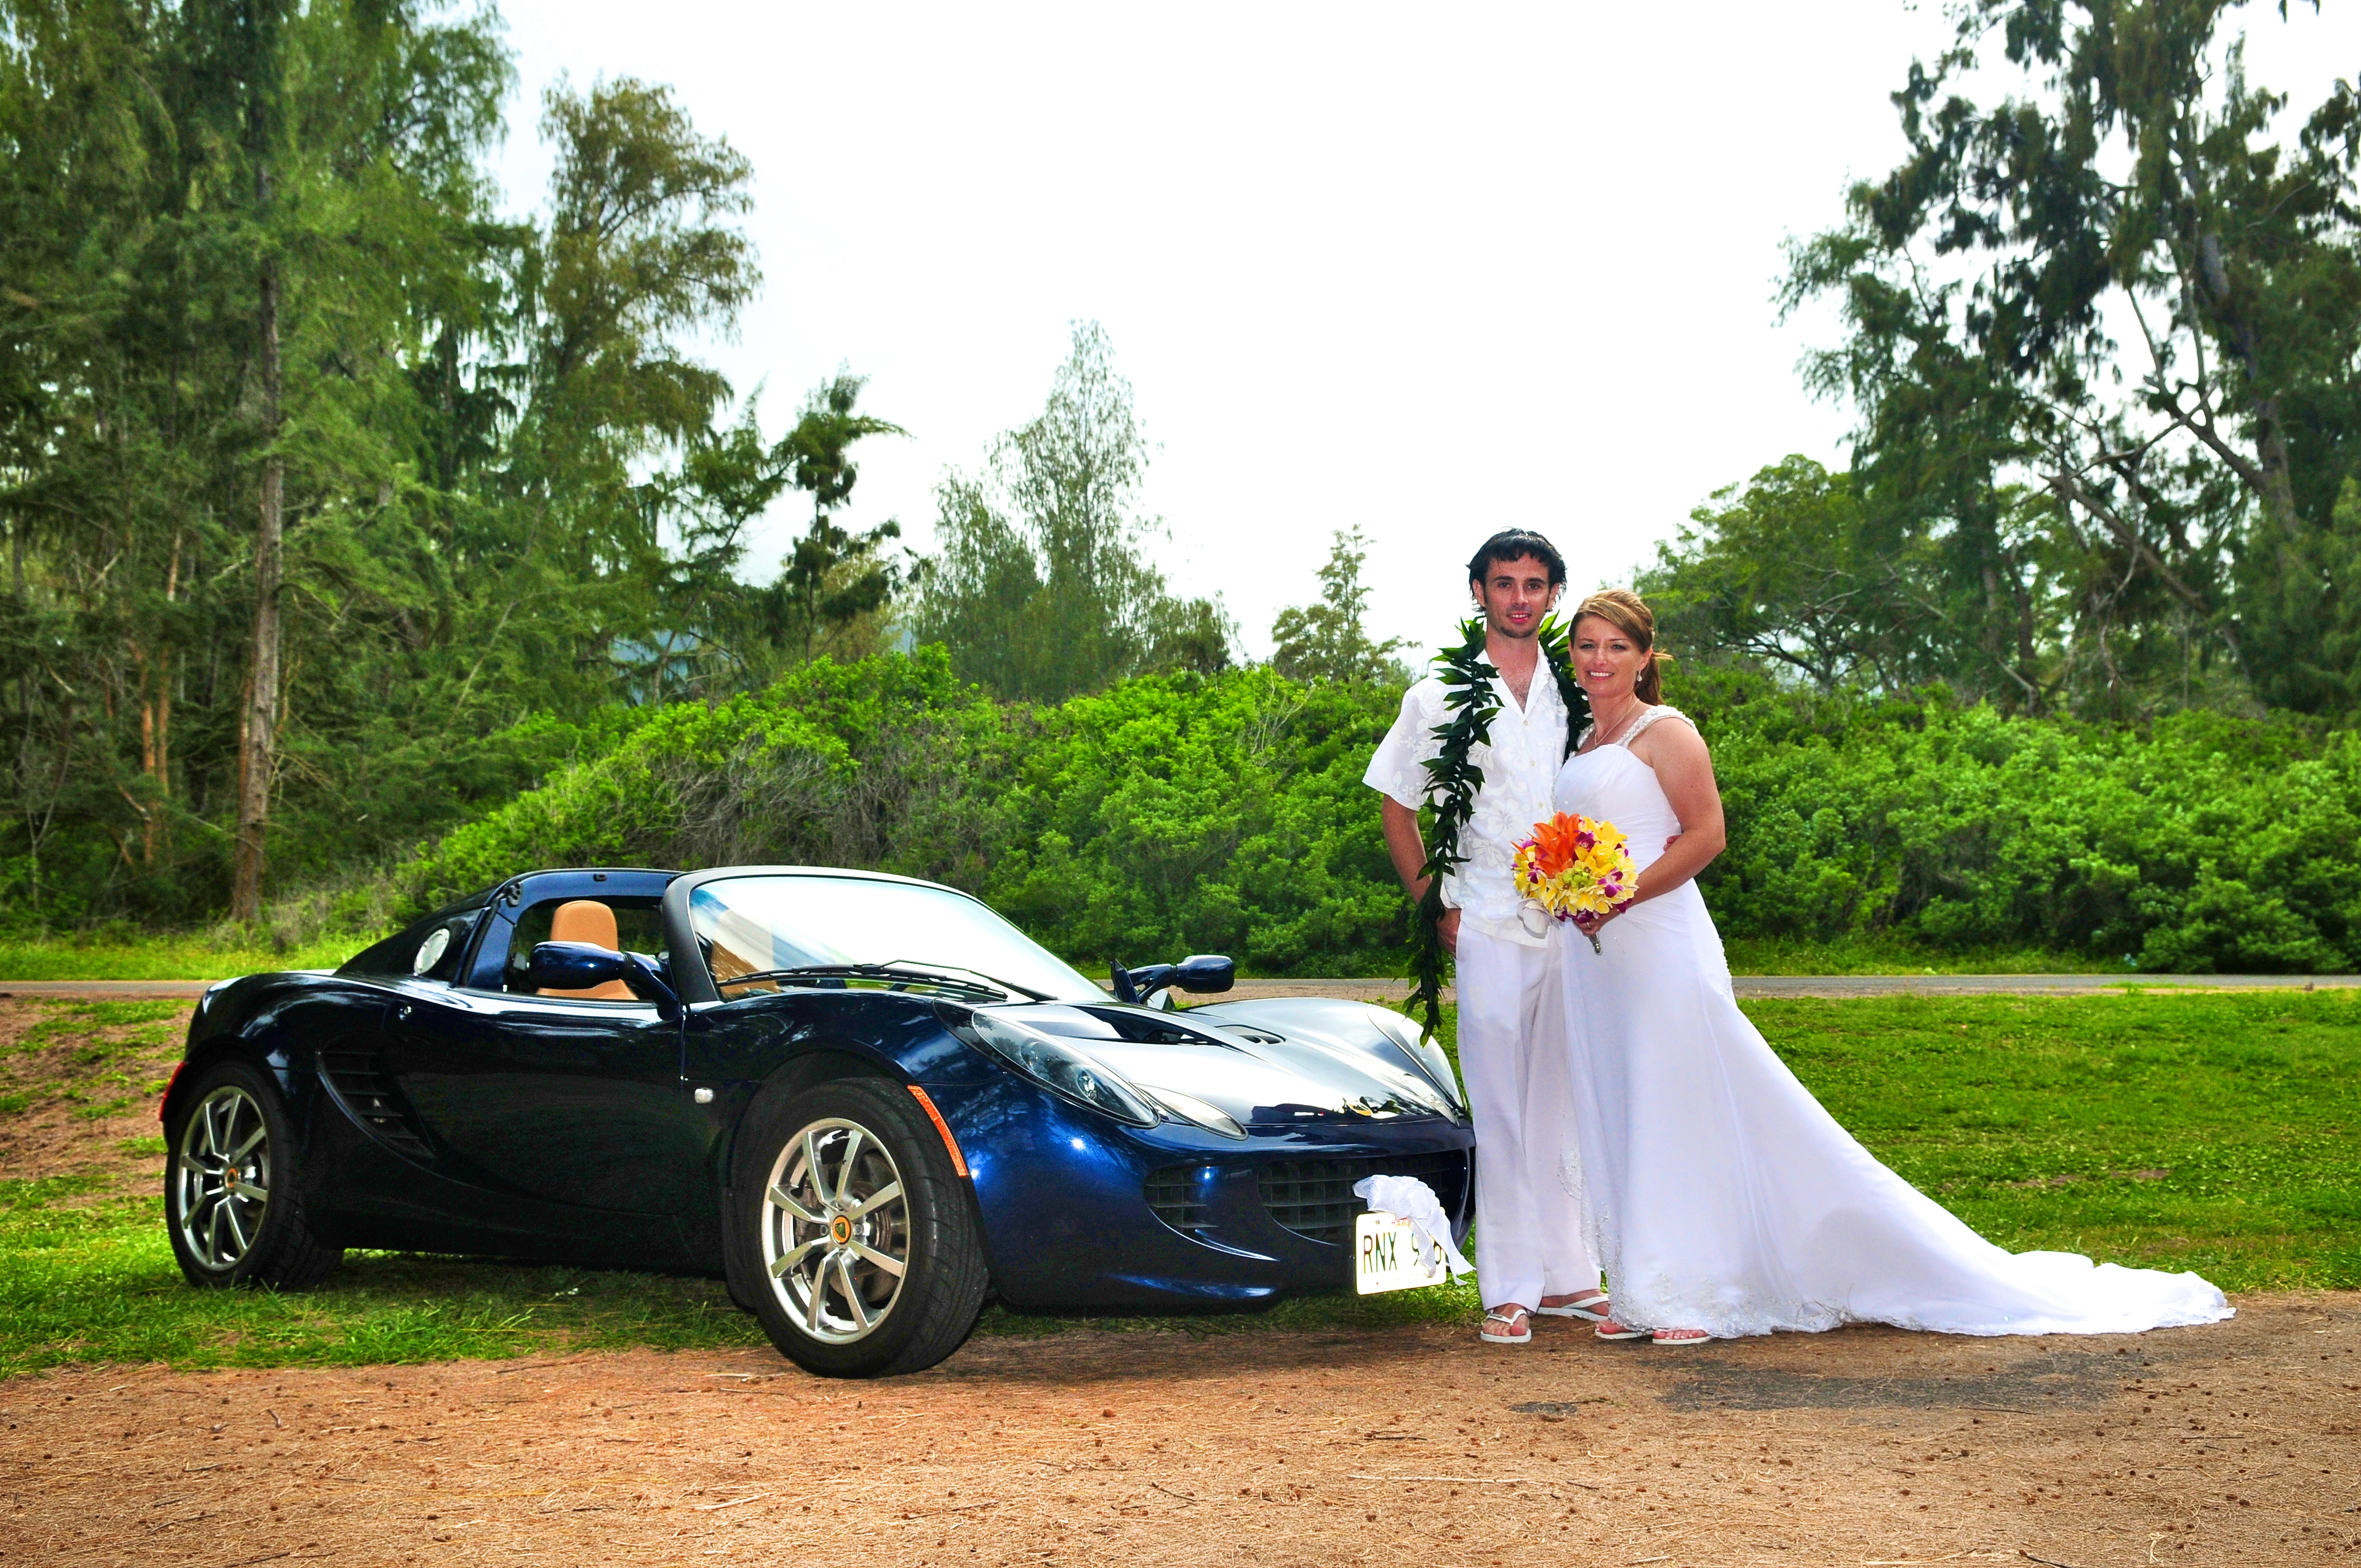 alohaislandweddings- Lotus car -24